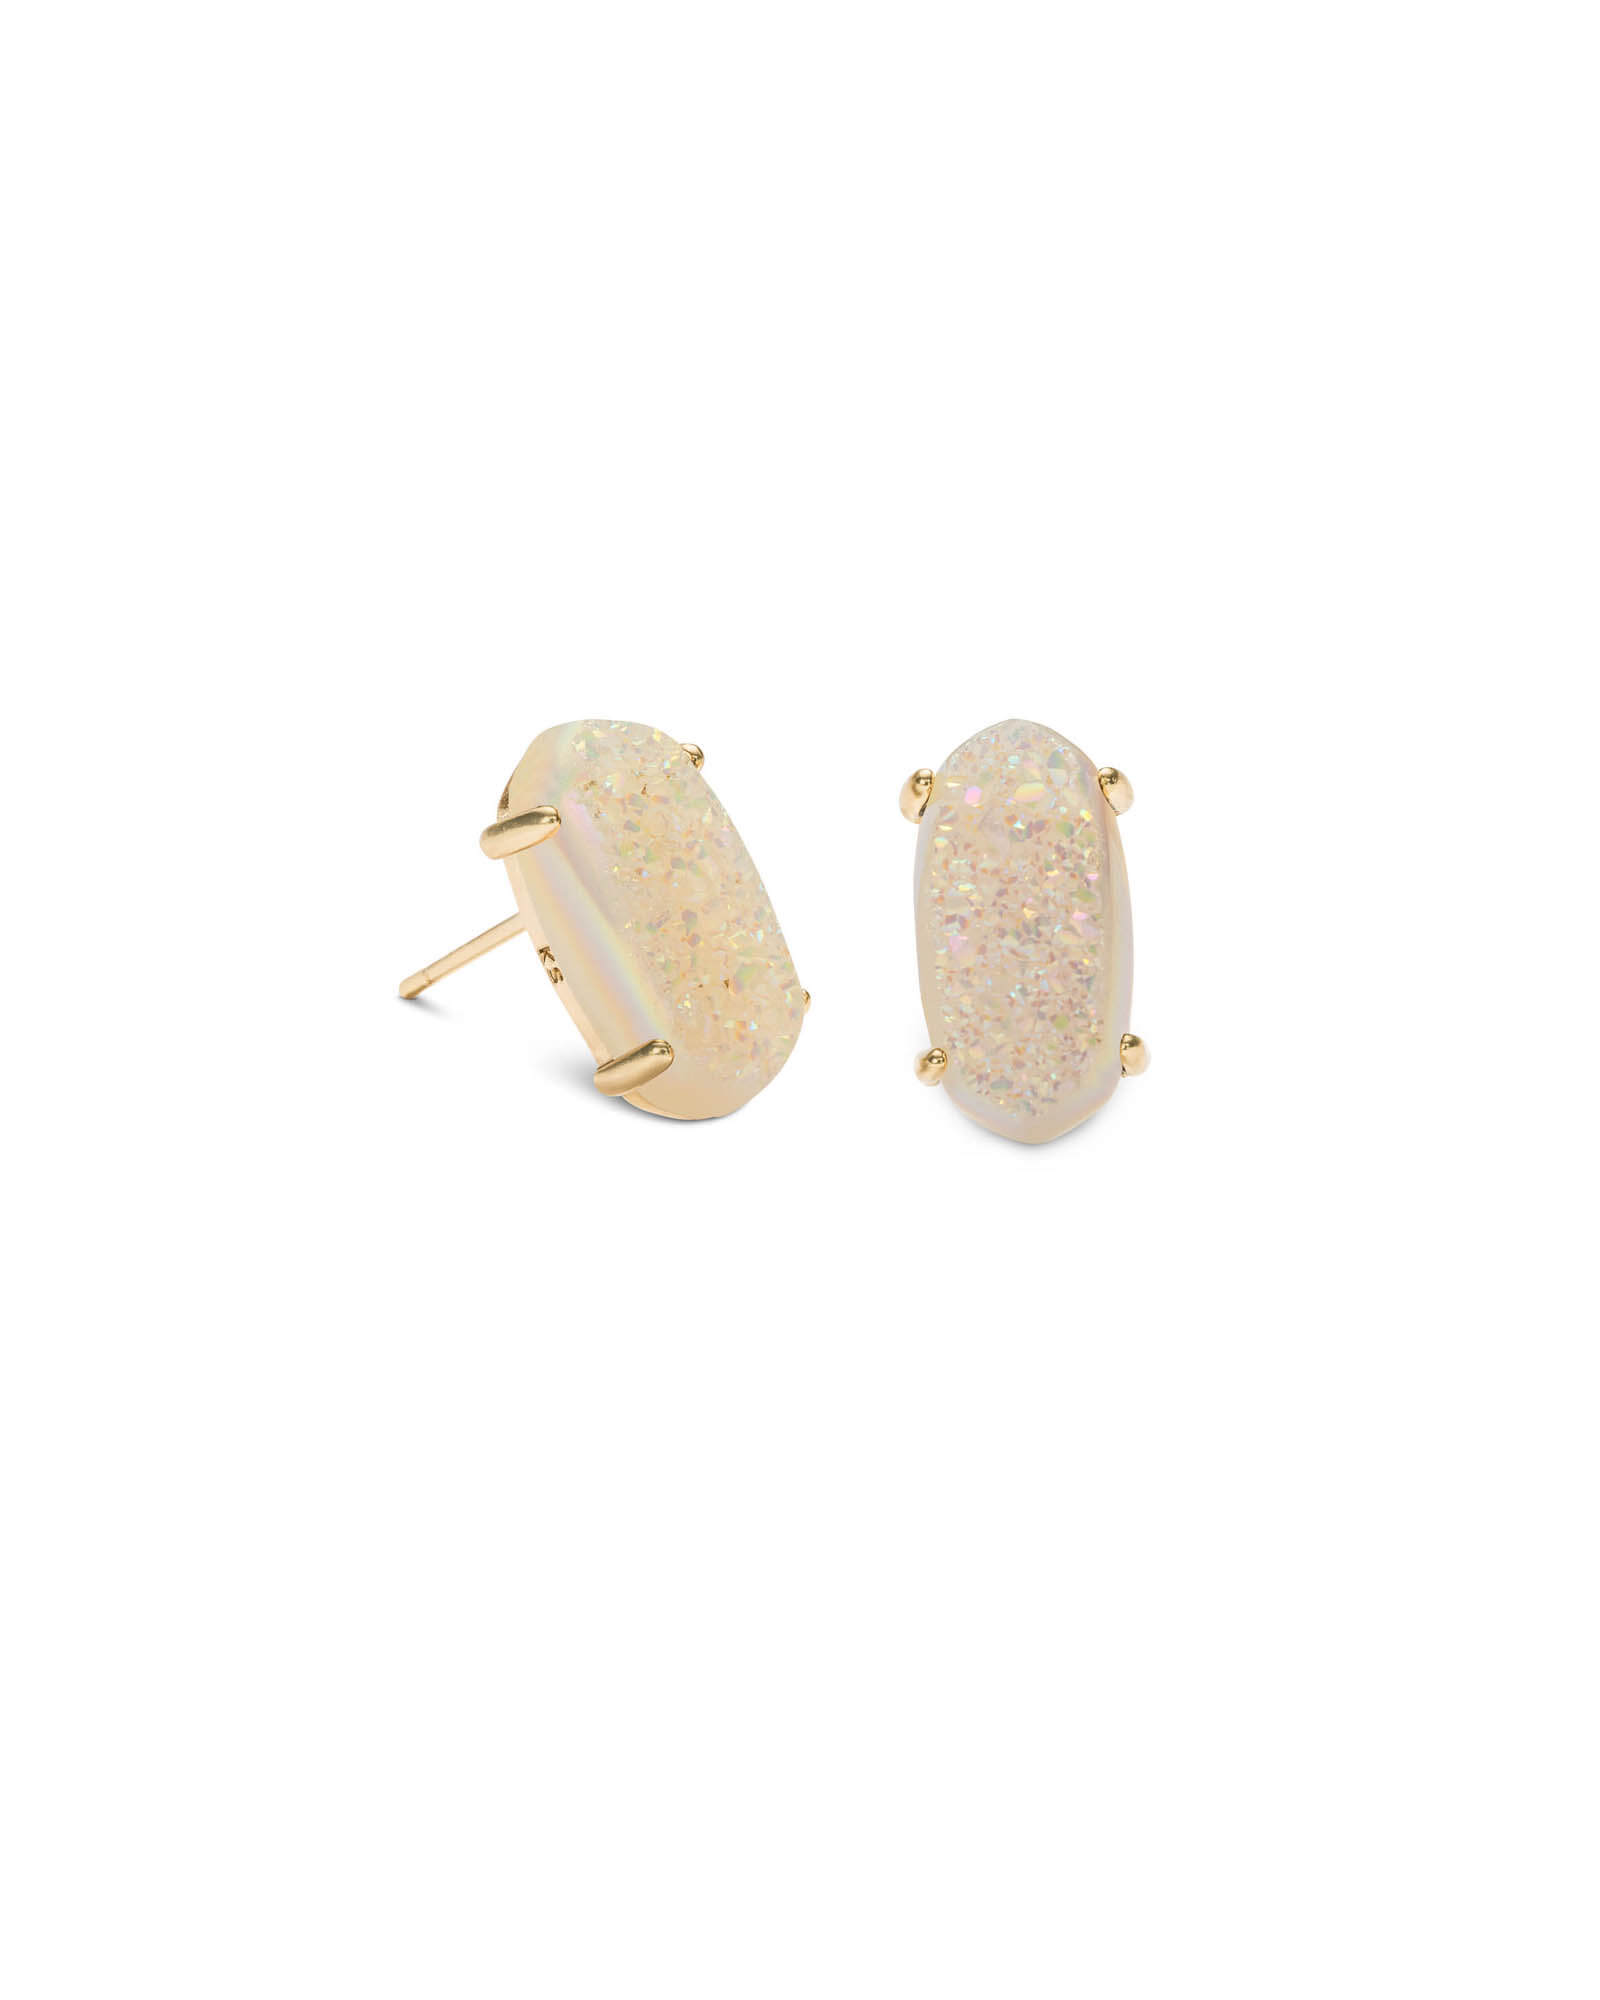 Betty Gold Stud Earrings in Iridescent Drusy